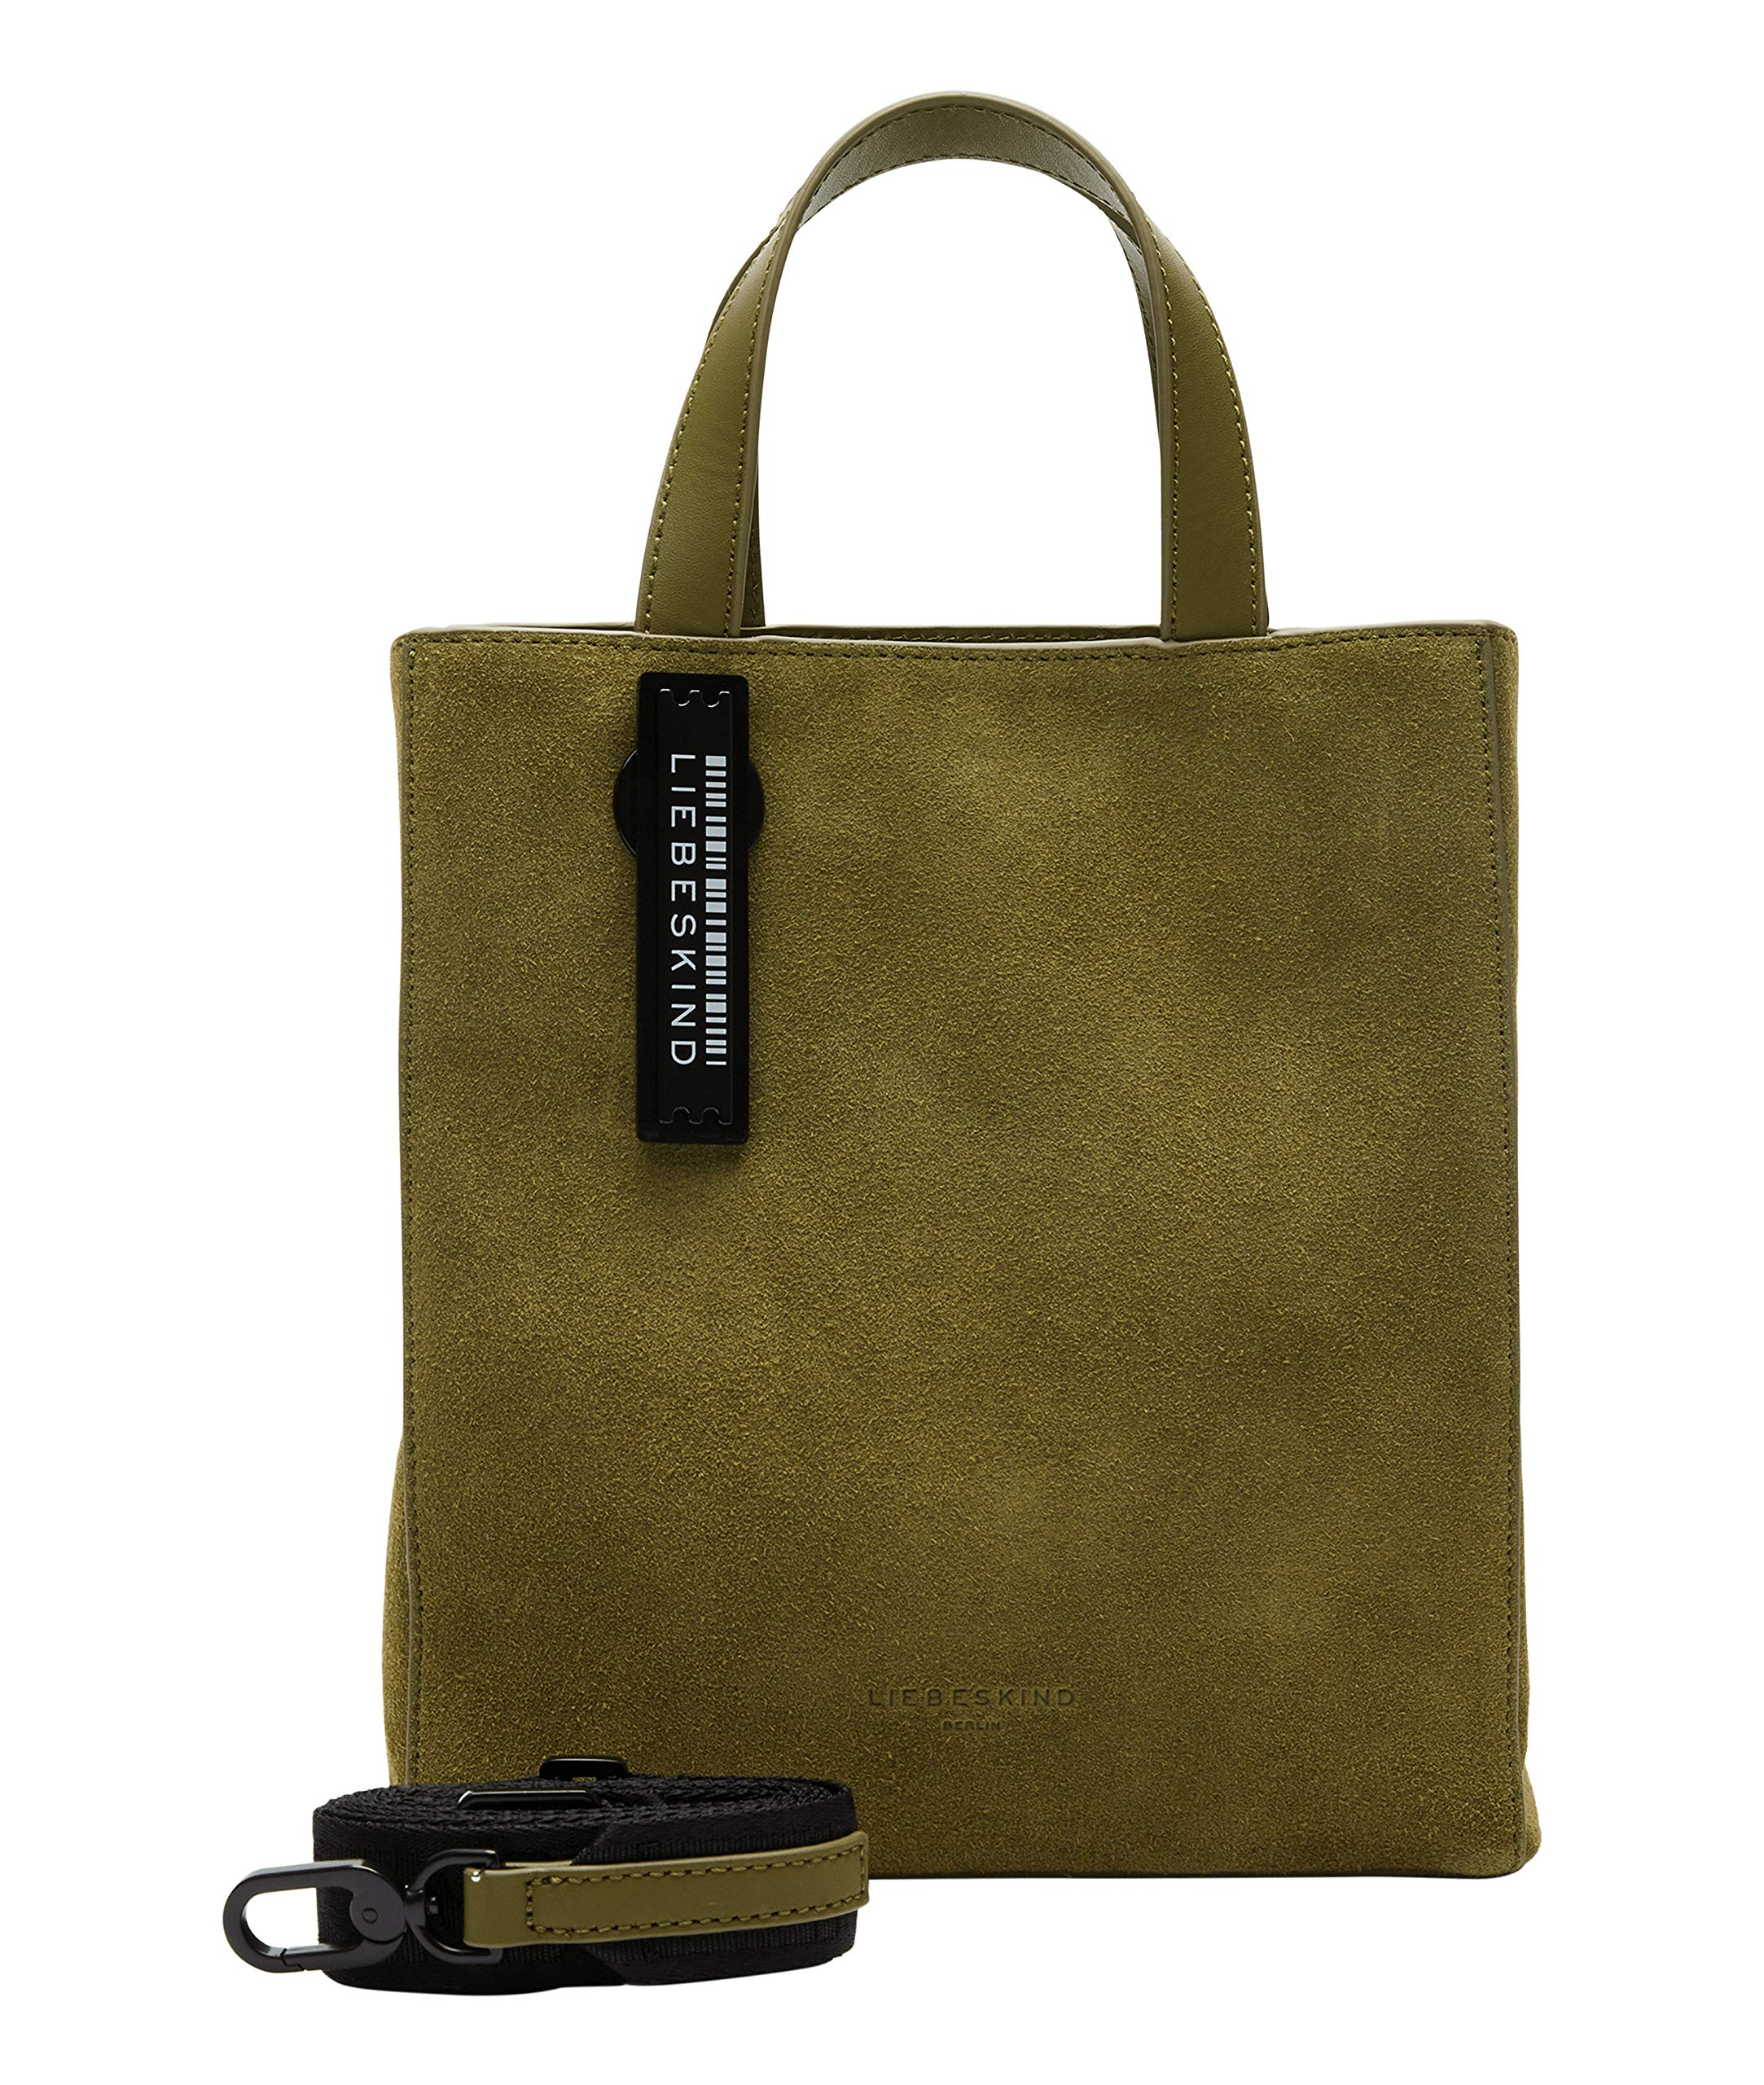 Liebeskind Berlin Paperbag/Tote Small Suede